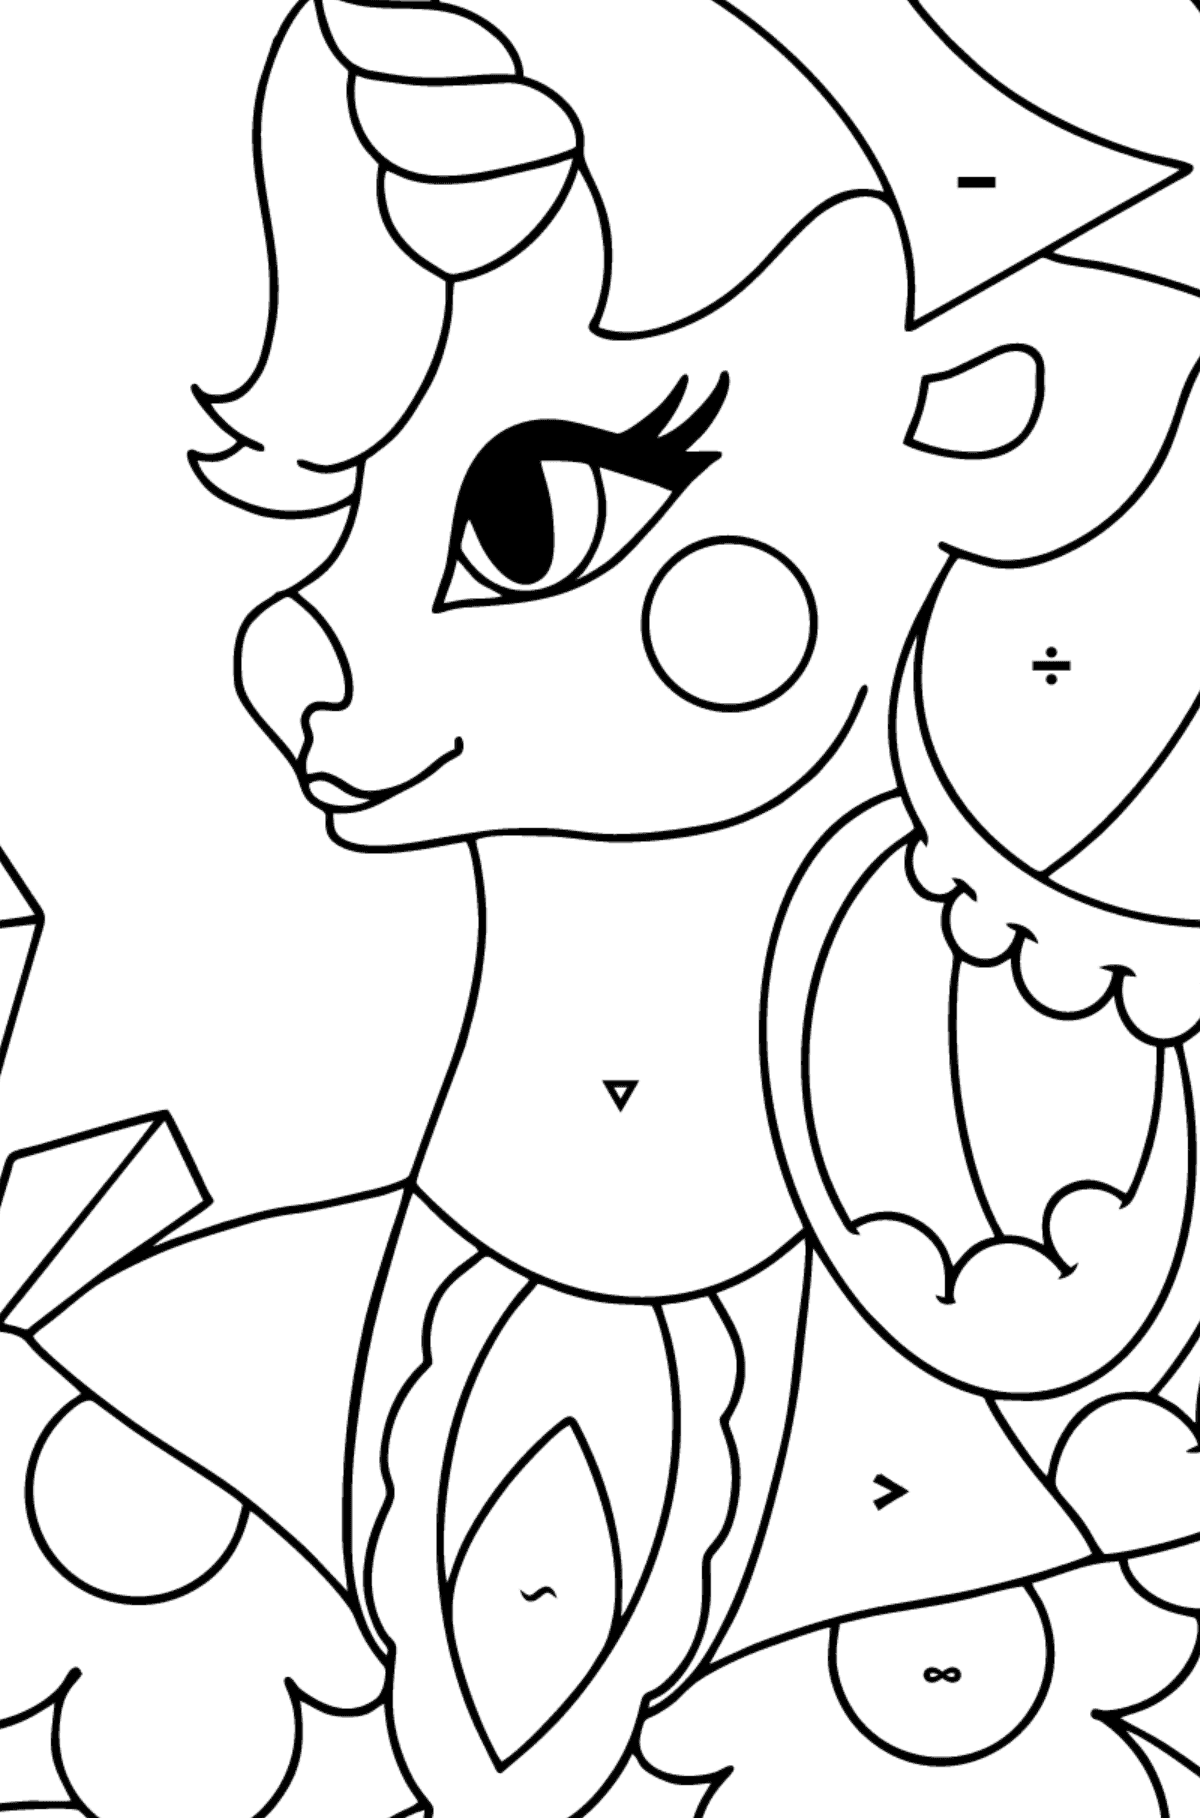 Simple Coloring Page - A Unicorn Queen for Children  - Color by Special Symbols